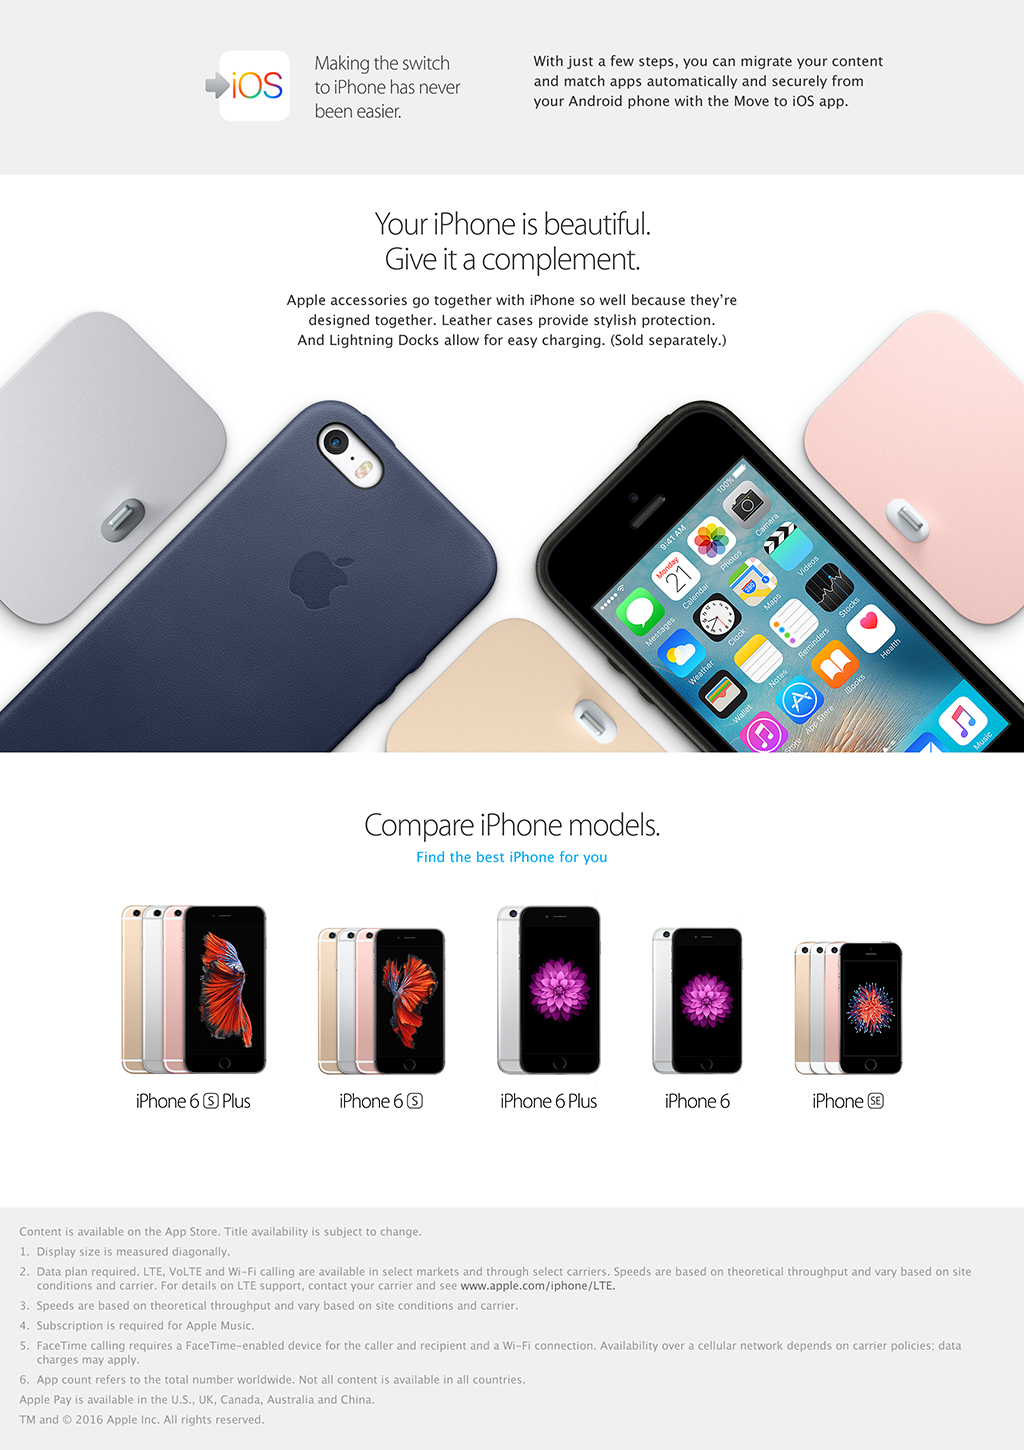 Comparison page for iPhone models